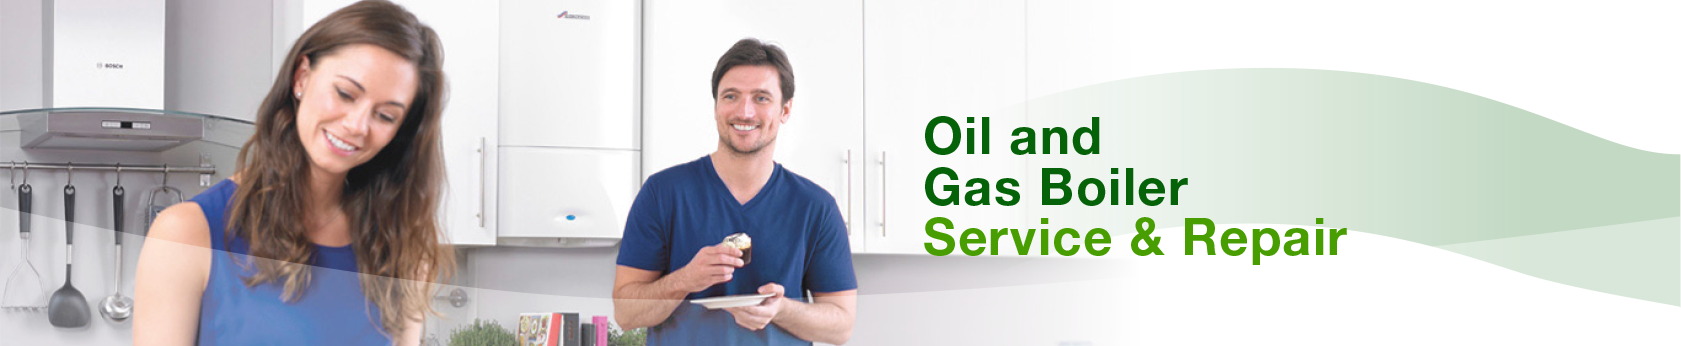 Boiler Service & Repair Brackley